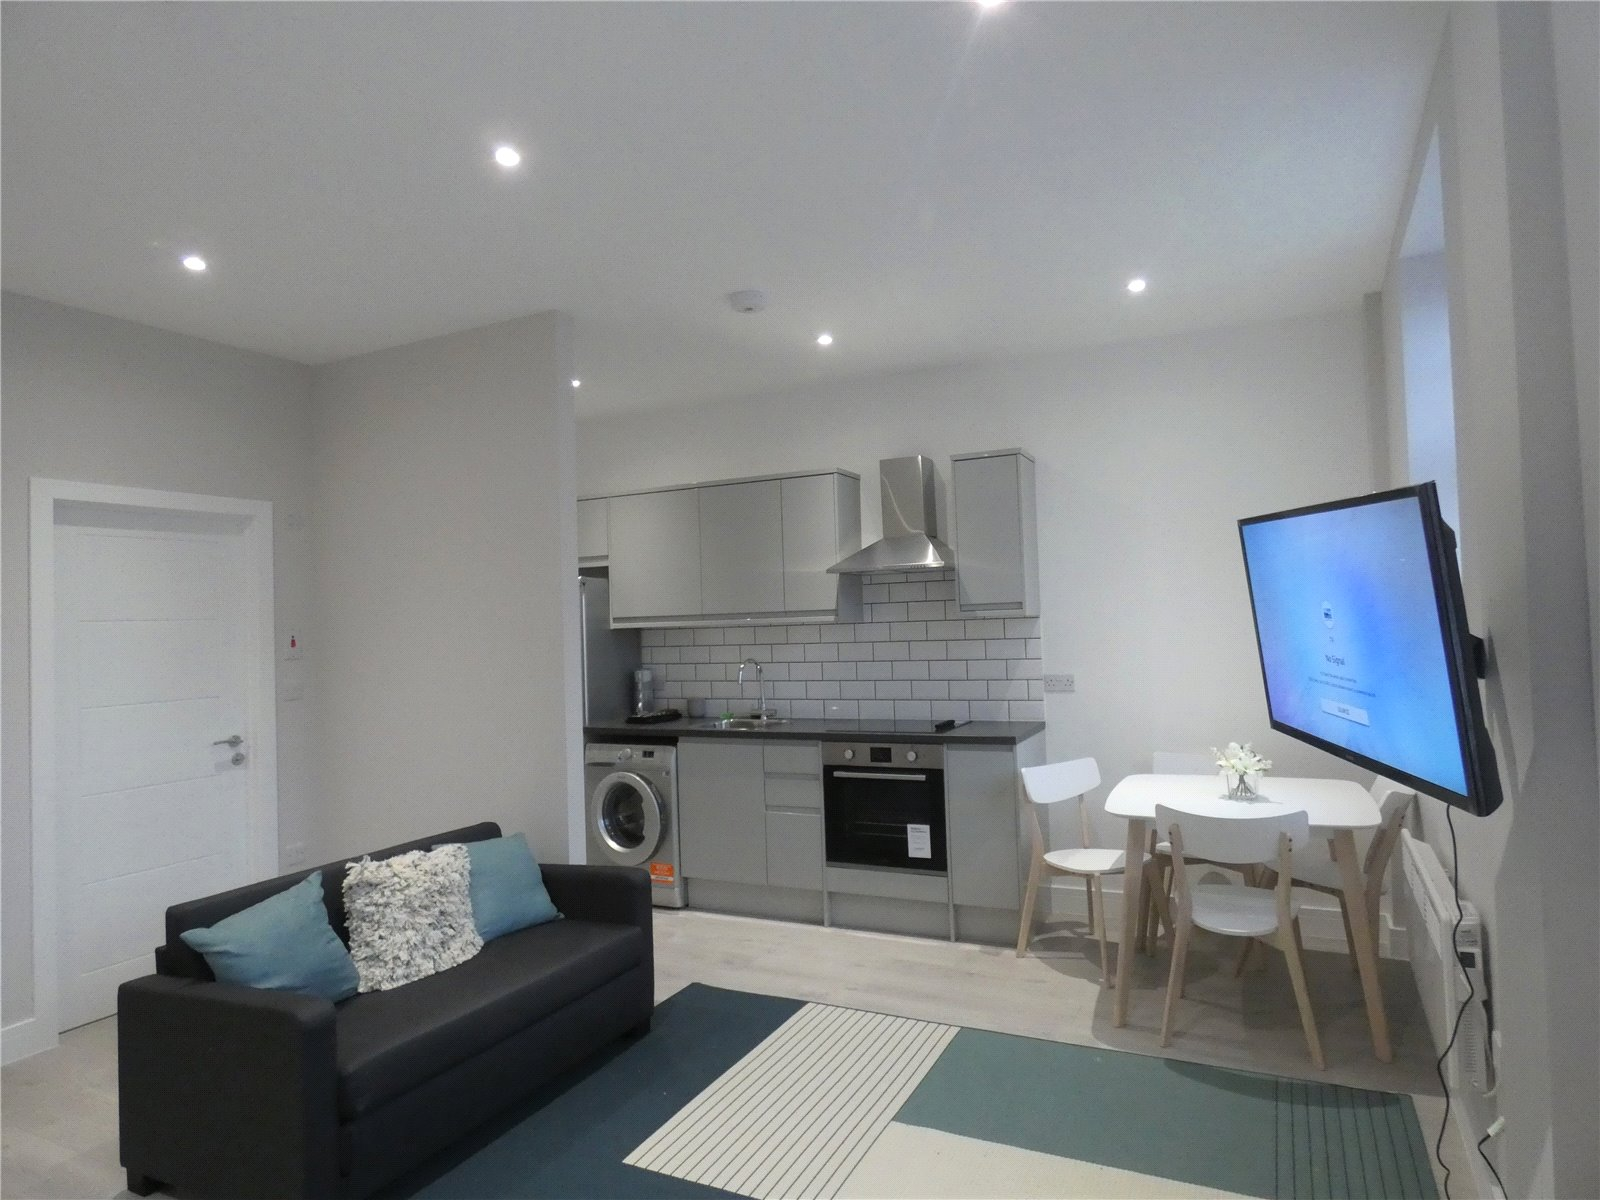 Apartment to rent in Whetstone, N20 9HW 1